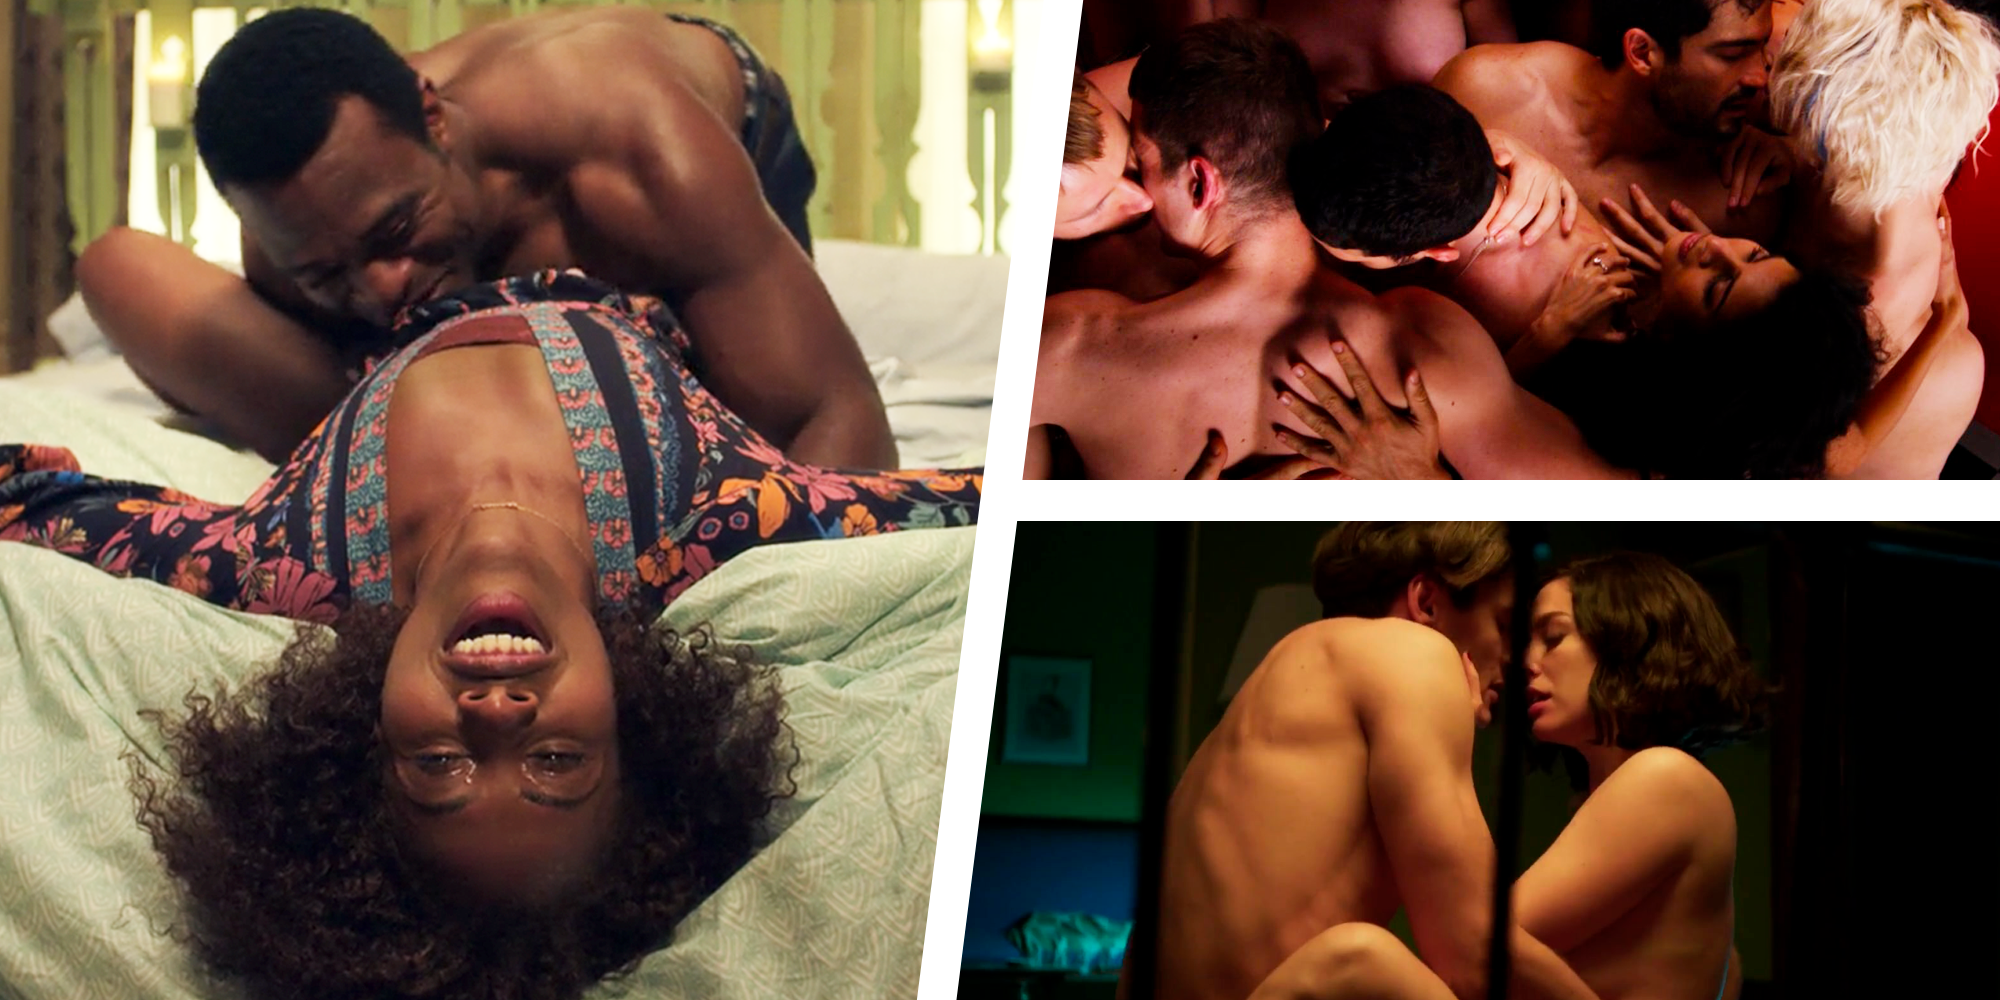 20 Netflix Sex Scenes That Are Pretty Much on Par With Porn